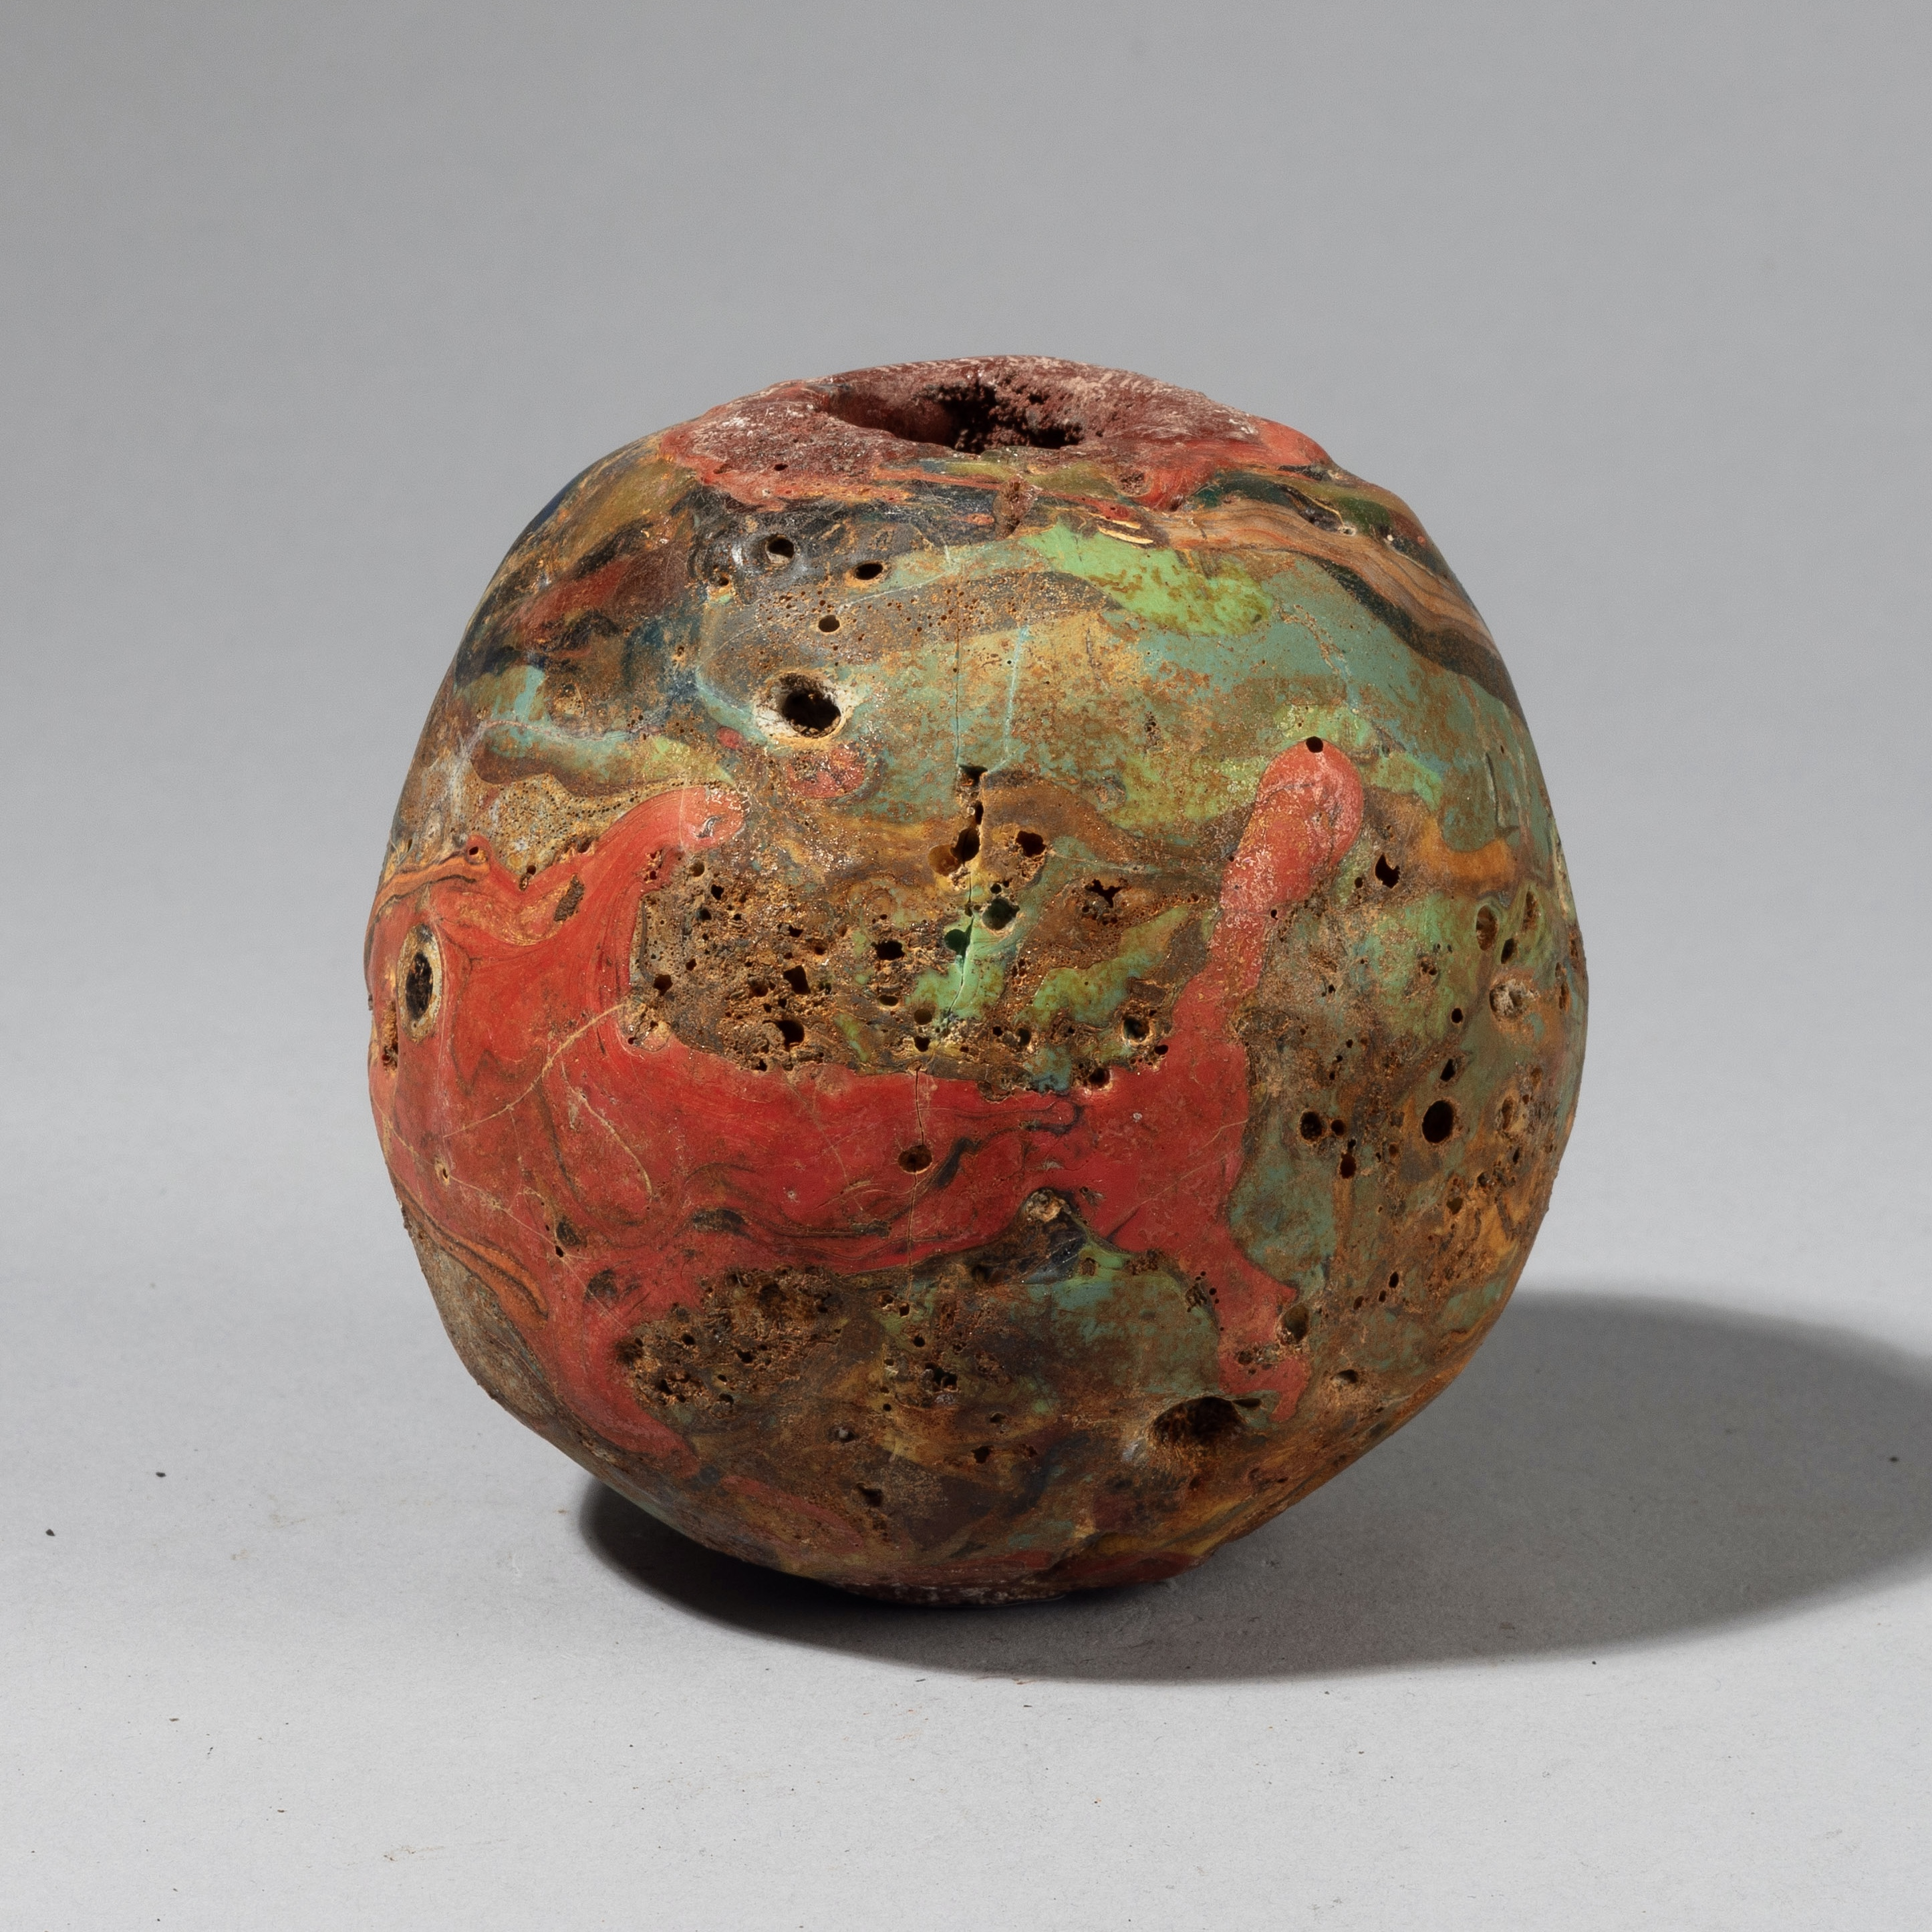 A GIANT SOLID GLASS BEAD FROM JAVA WITH FISH INDONESIA ( No 4310)